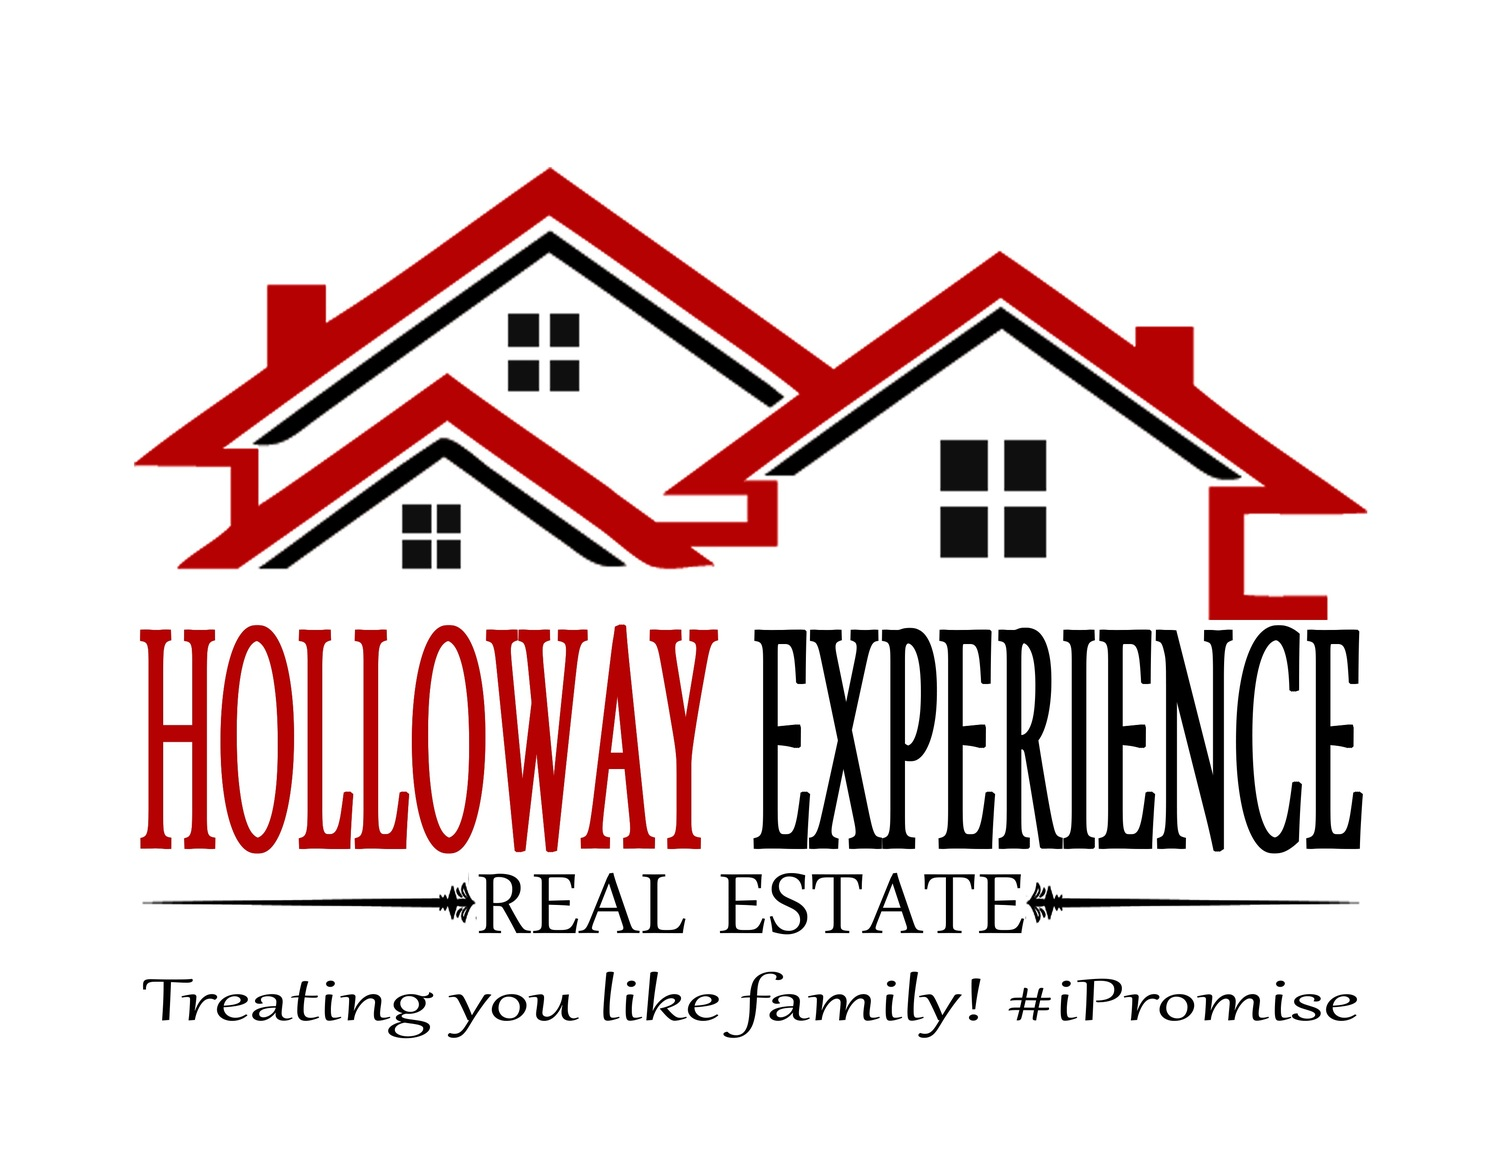 HollowayExperience.com